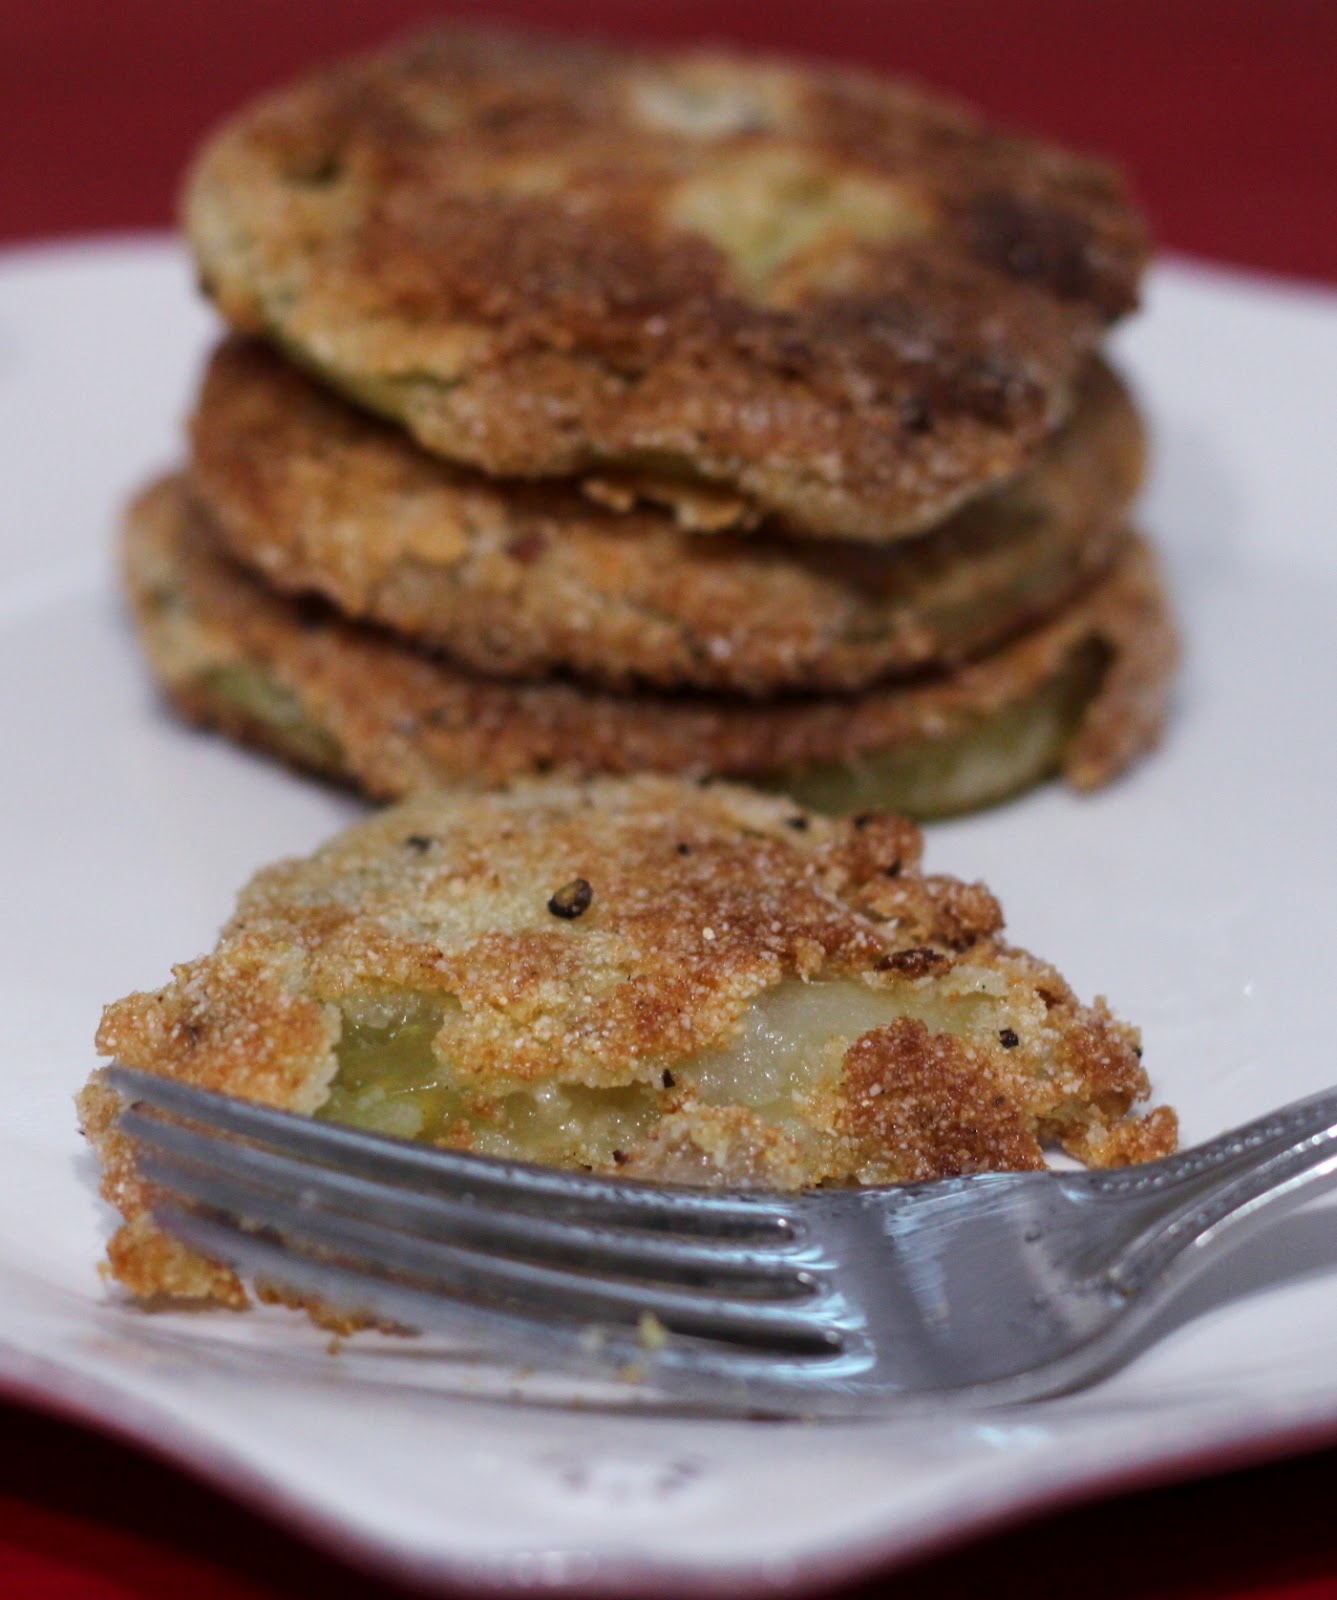 Confections from the Cody Kitchen: Cornmeal Fried Green Tomatoes